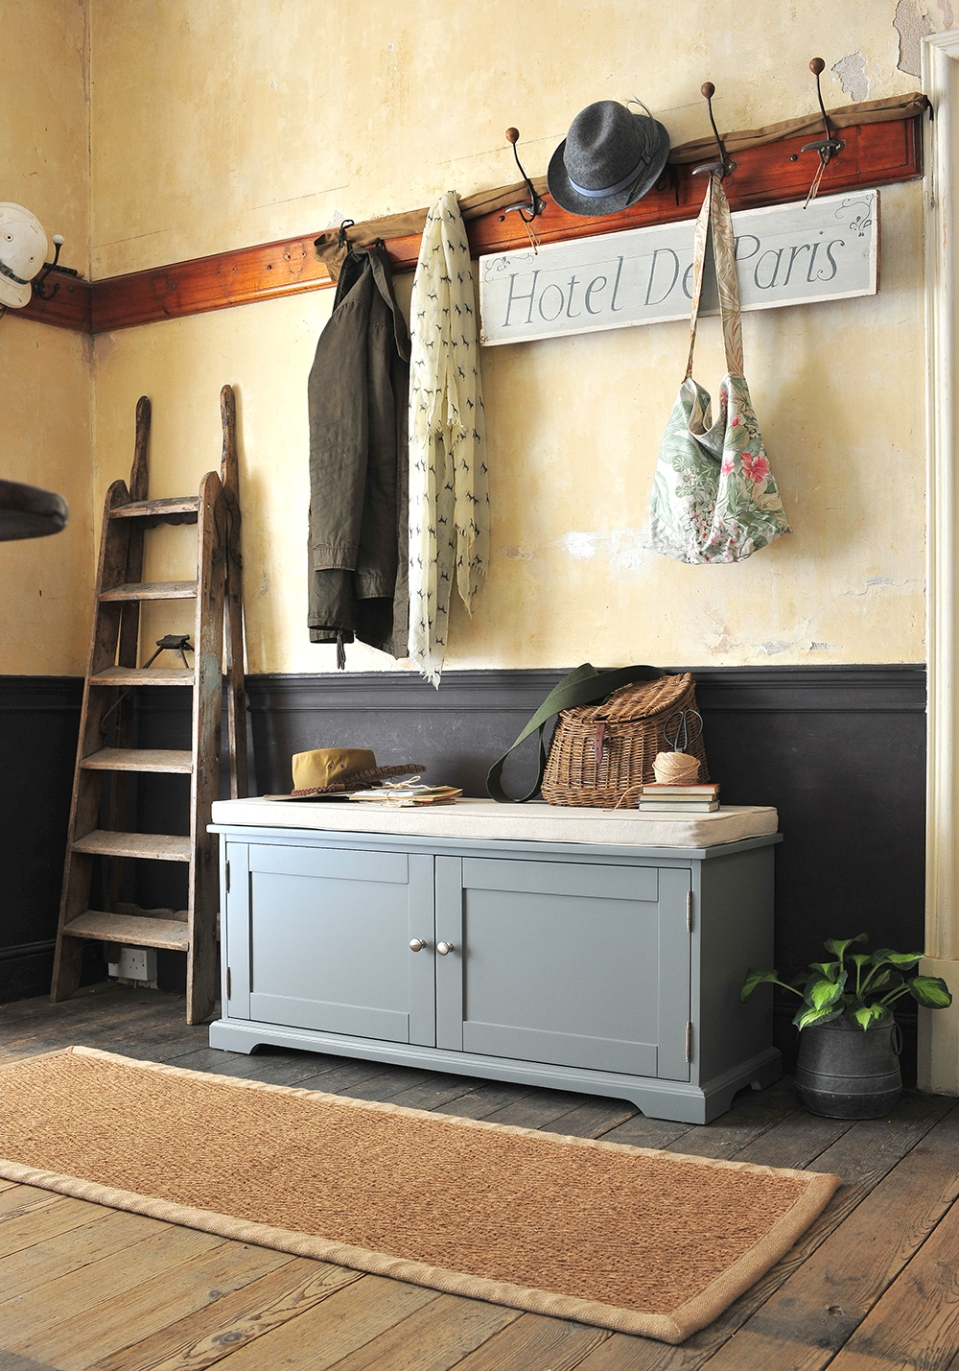 Grey hallway furniture, country house, country living, fishing basket, wooden floors